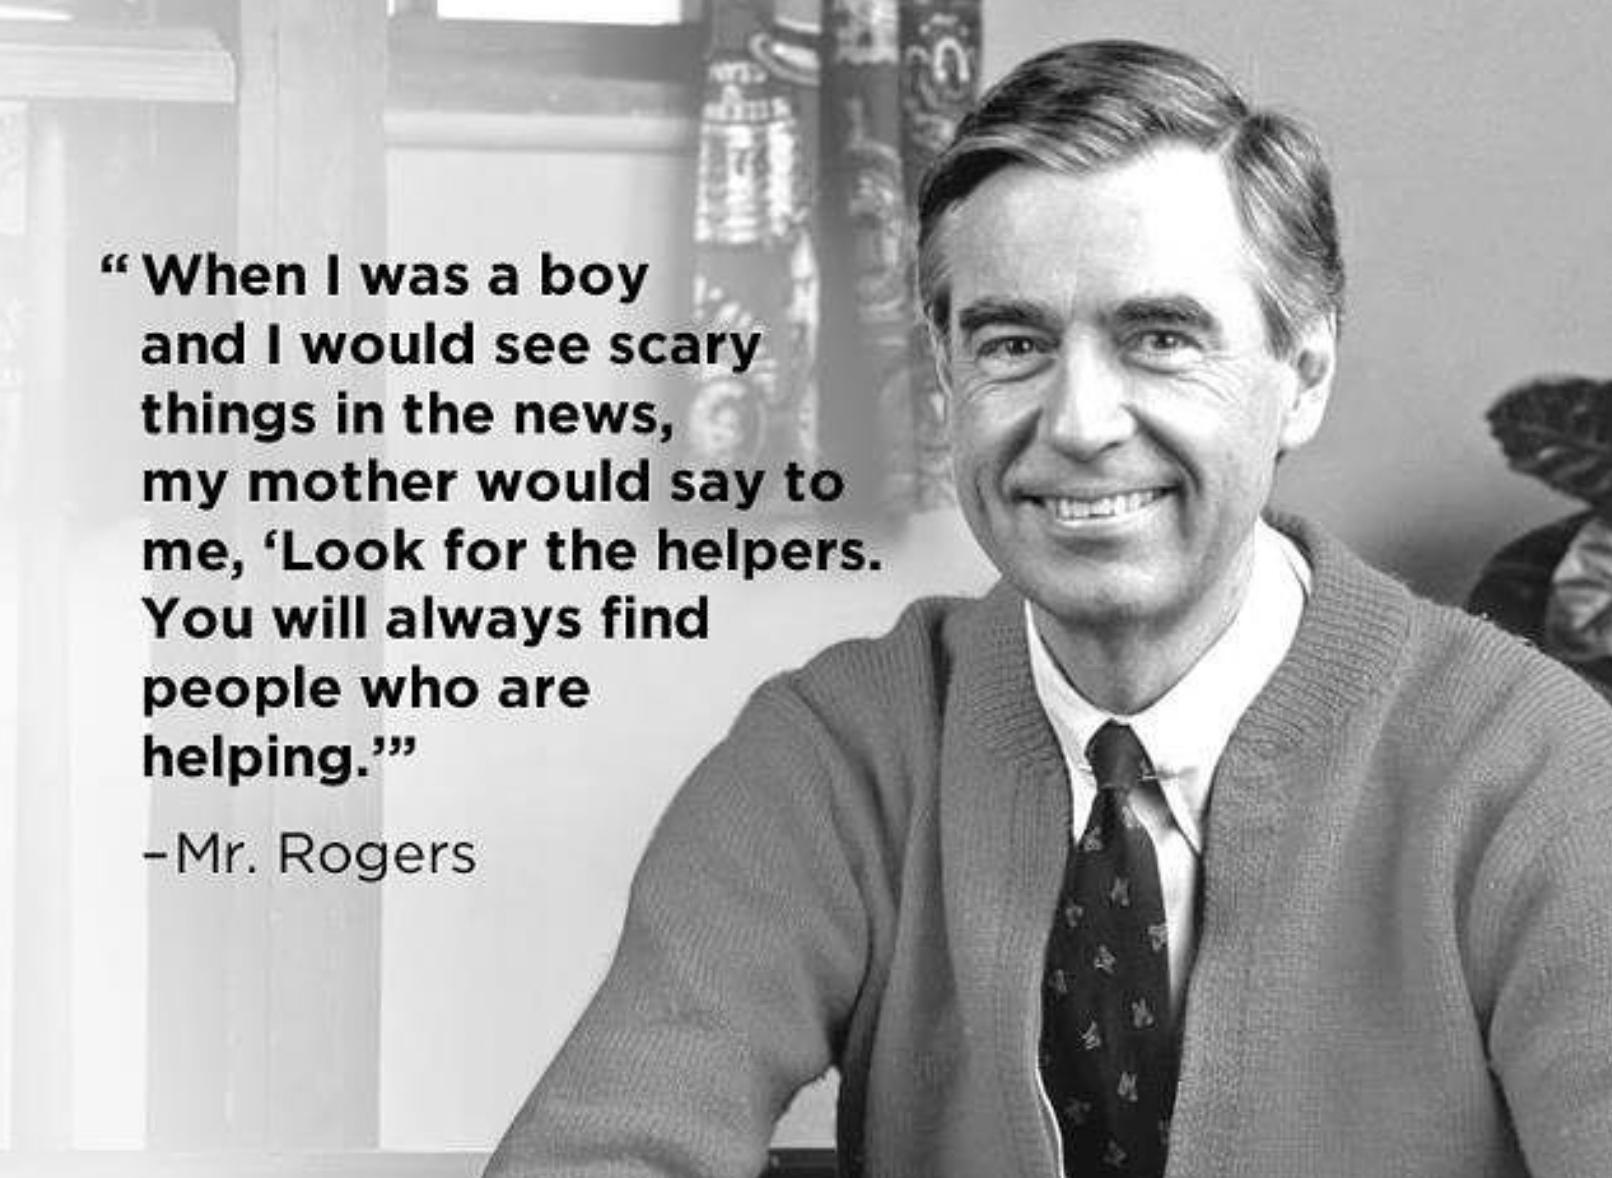 """ When I was a boy and I would see scary 1 things' In the news, - my mother would 5 Wt me, 'Look for the helpe You will always find people who are ., helping-3"" _ ' M —Mr. Rogers ' ' "" ' https://inspirational.ly"